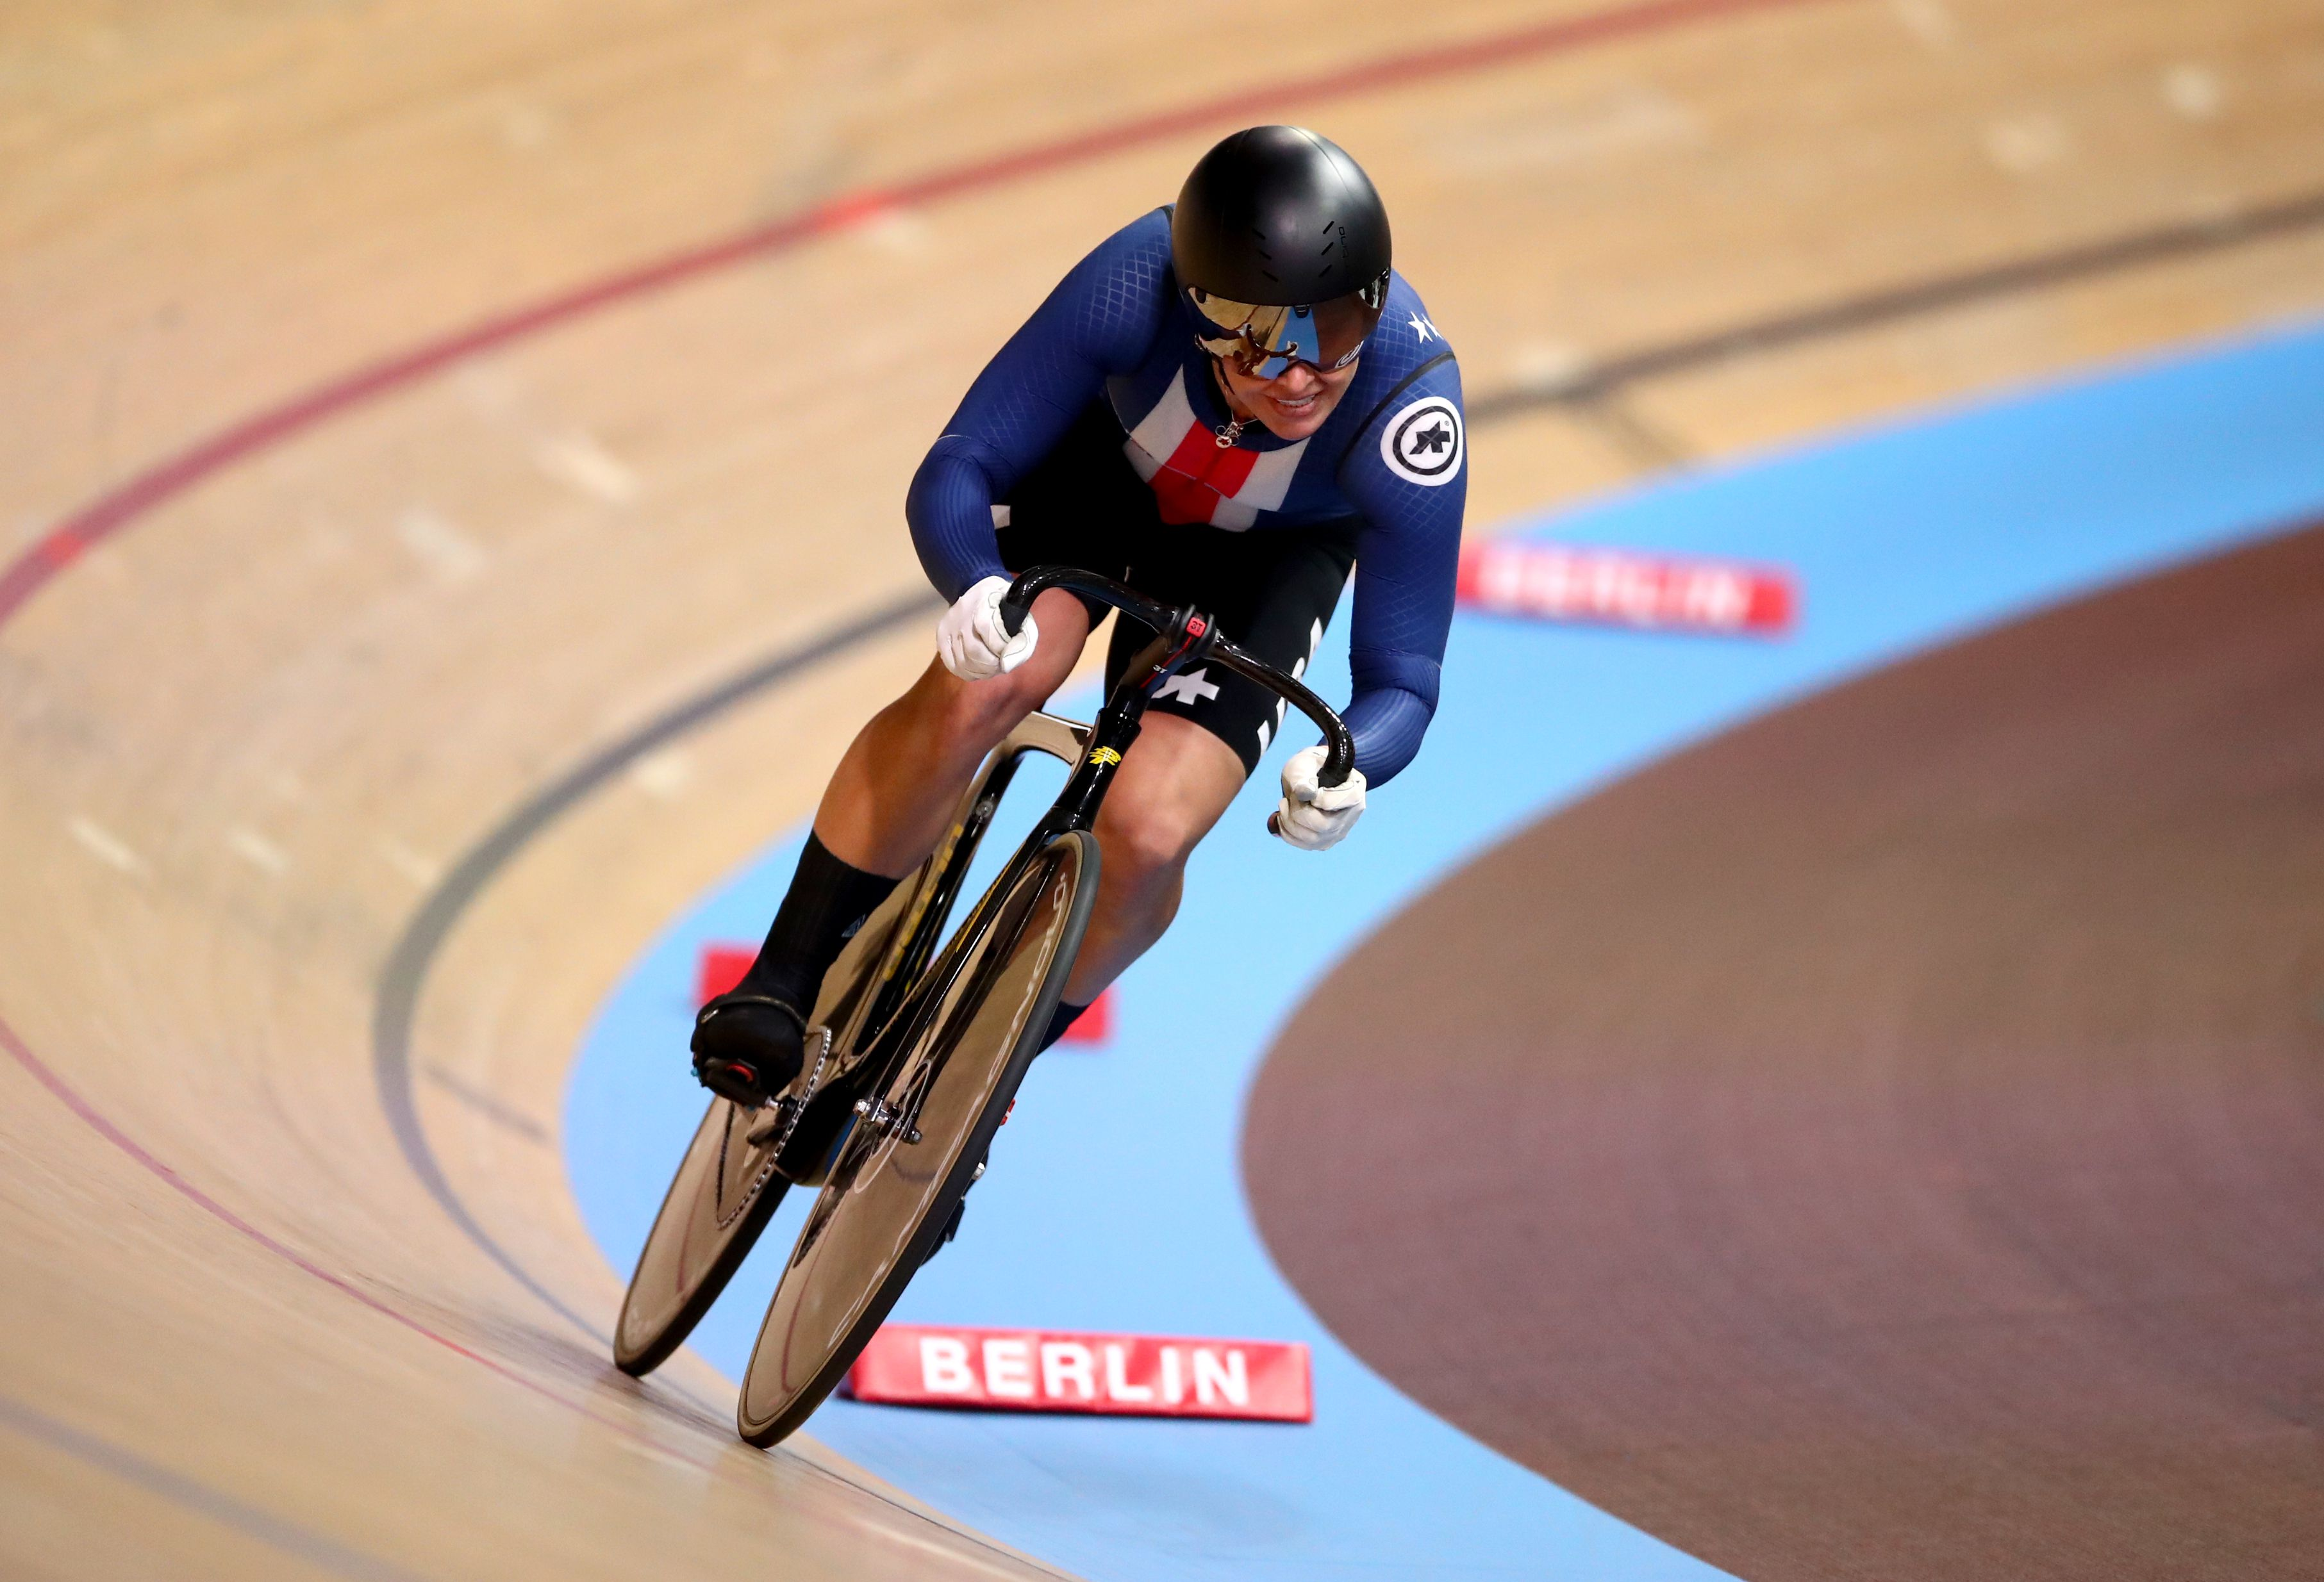 Maddie Godby competes in the sprint competition during the world championships in 2020. Photo: Tim Goode/PA Images via Getty Images